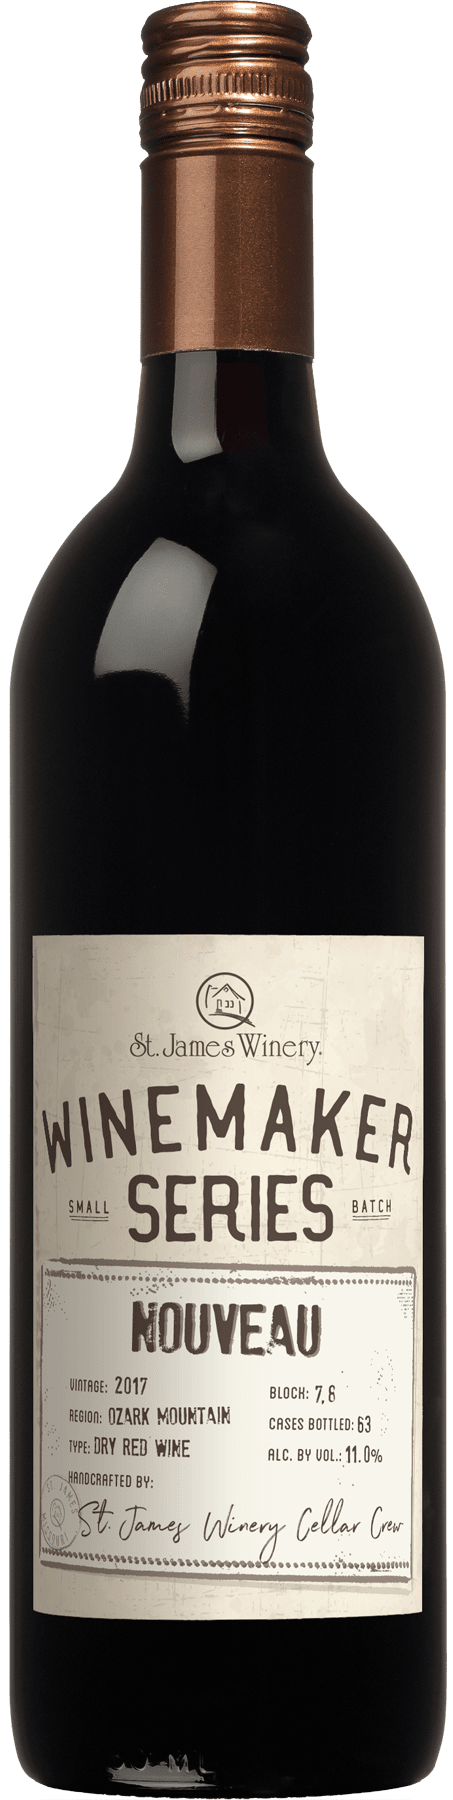 Nouveau 2017 Winemaker Series Dry Red Wine - St. James Winery Missouri